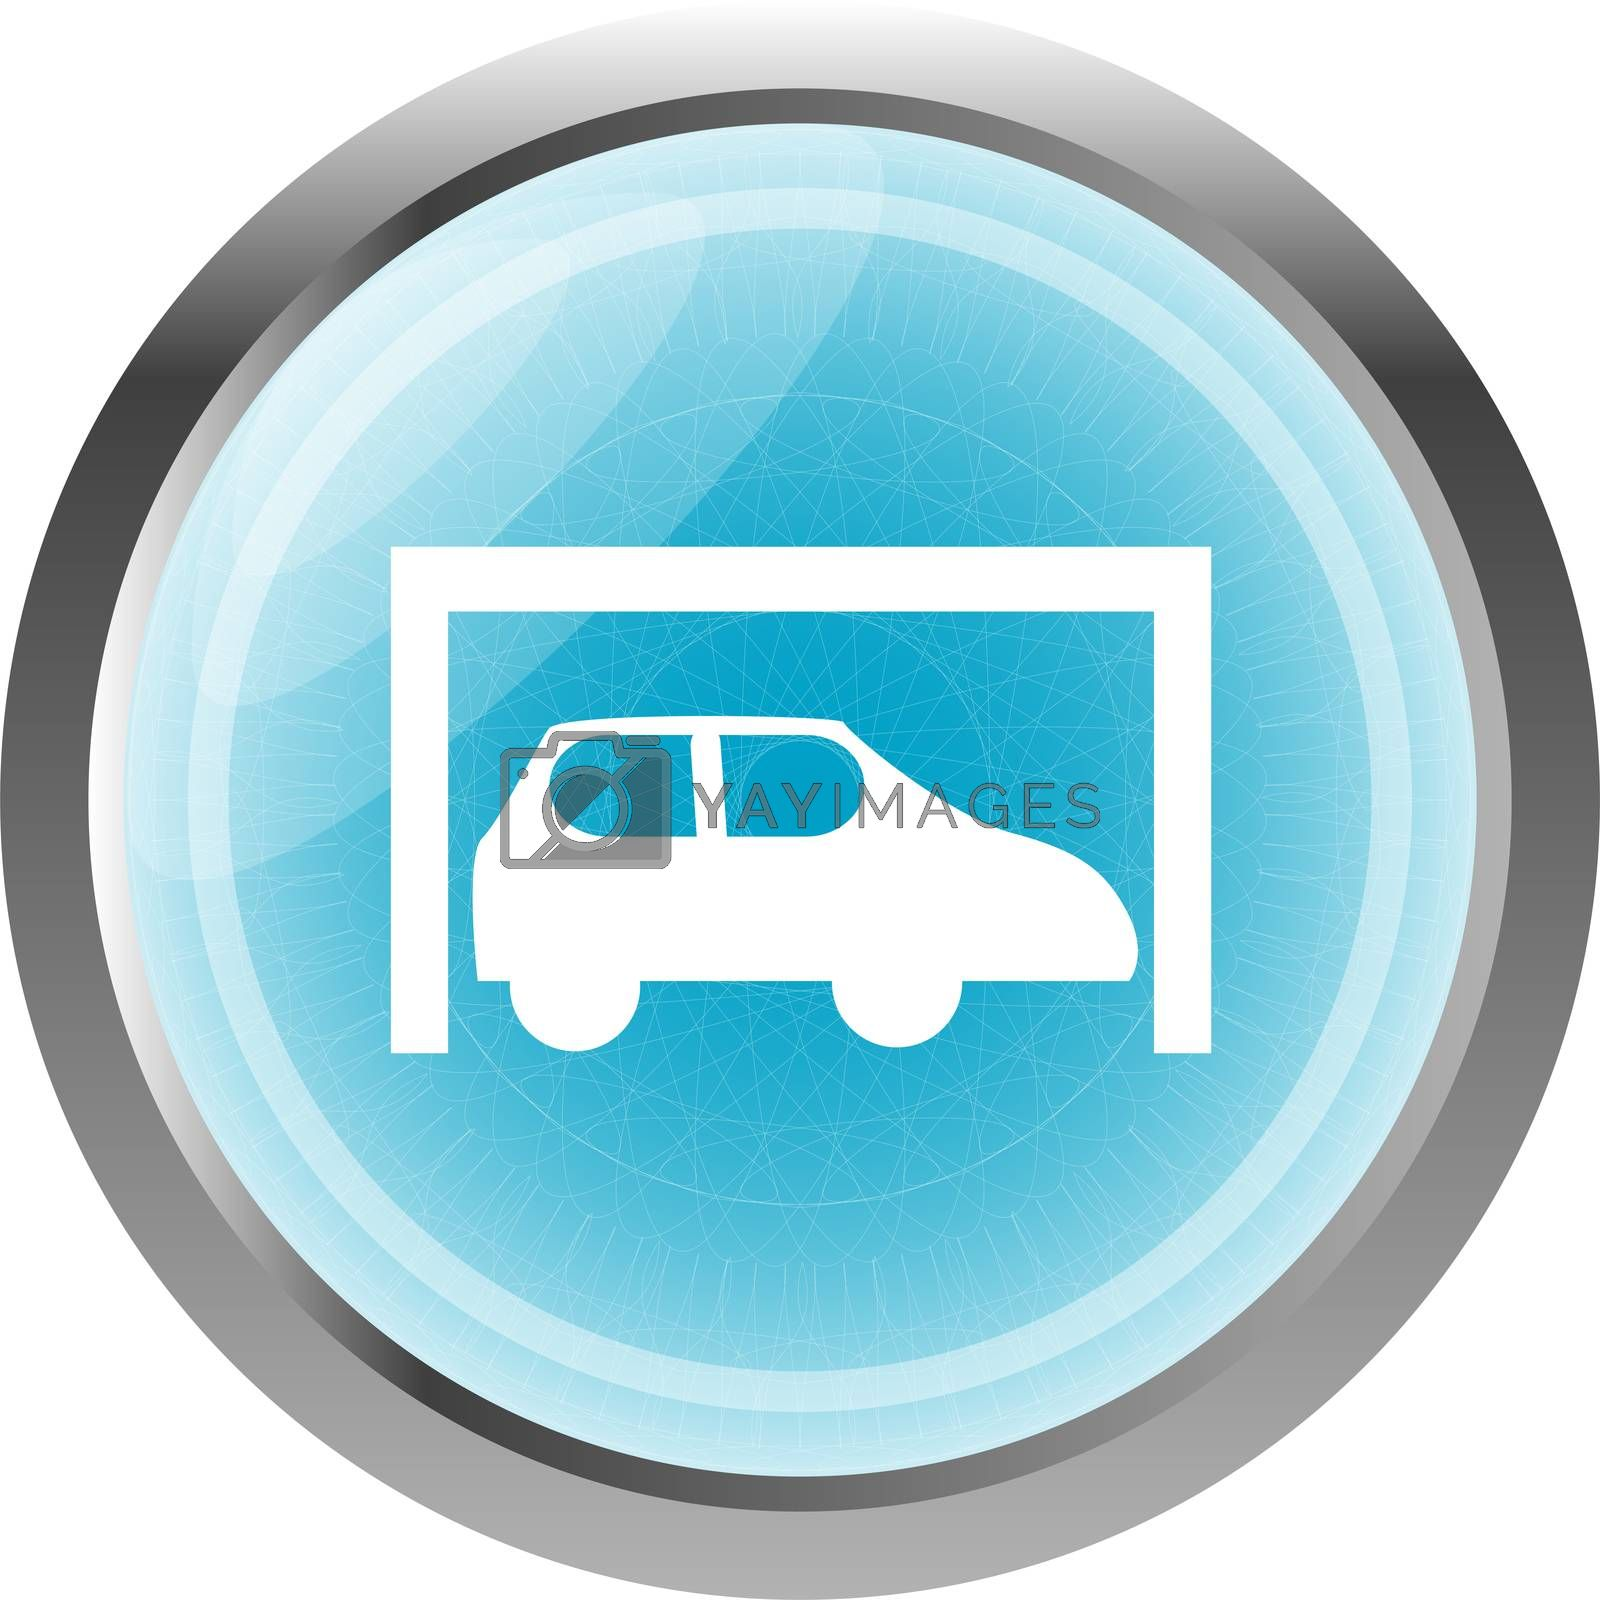 Royalty free image of Car icon button design elements isolated on white by fotoscool